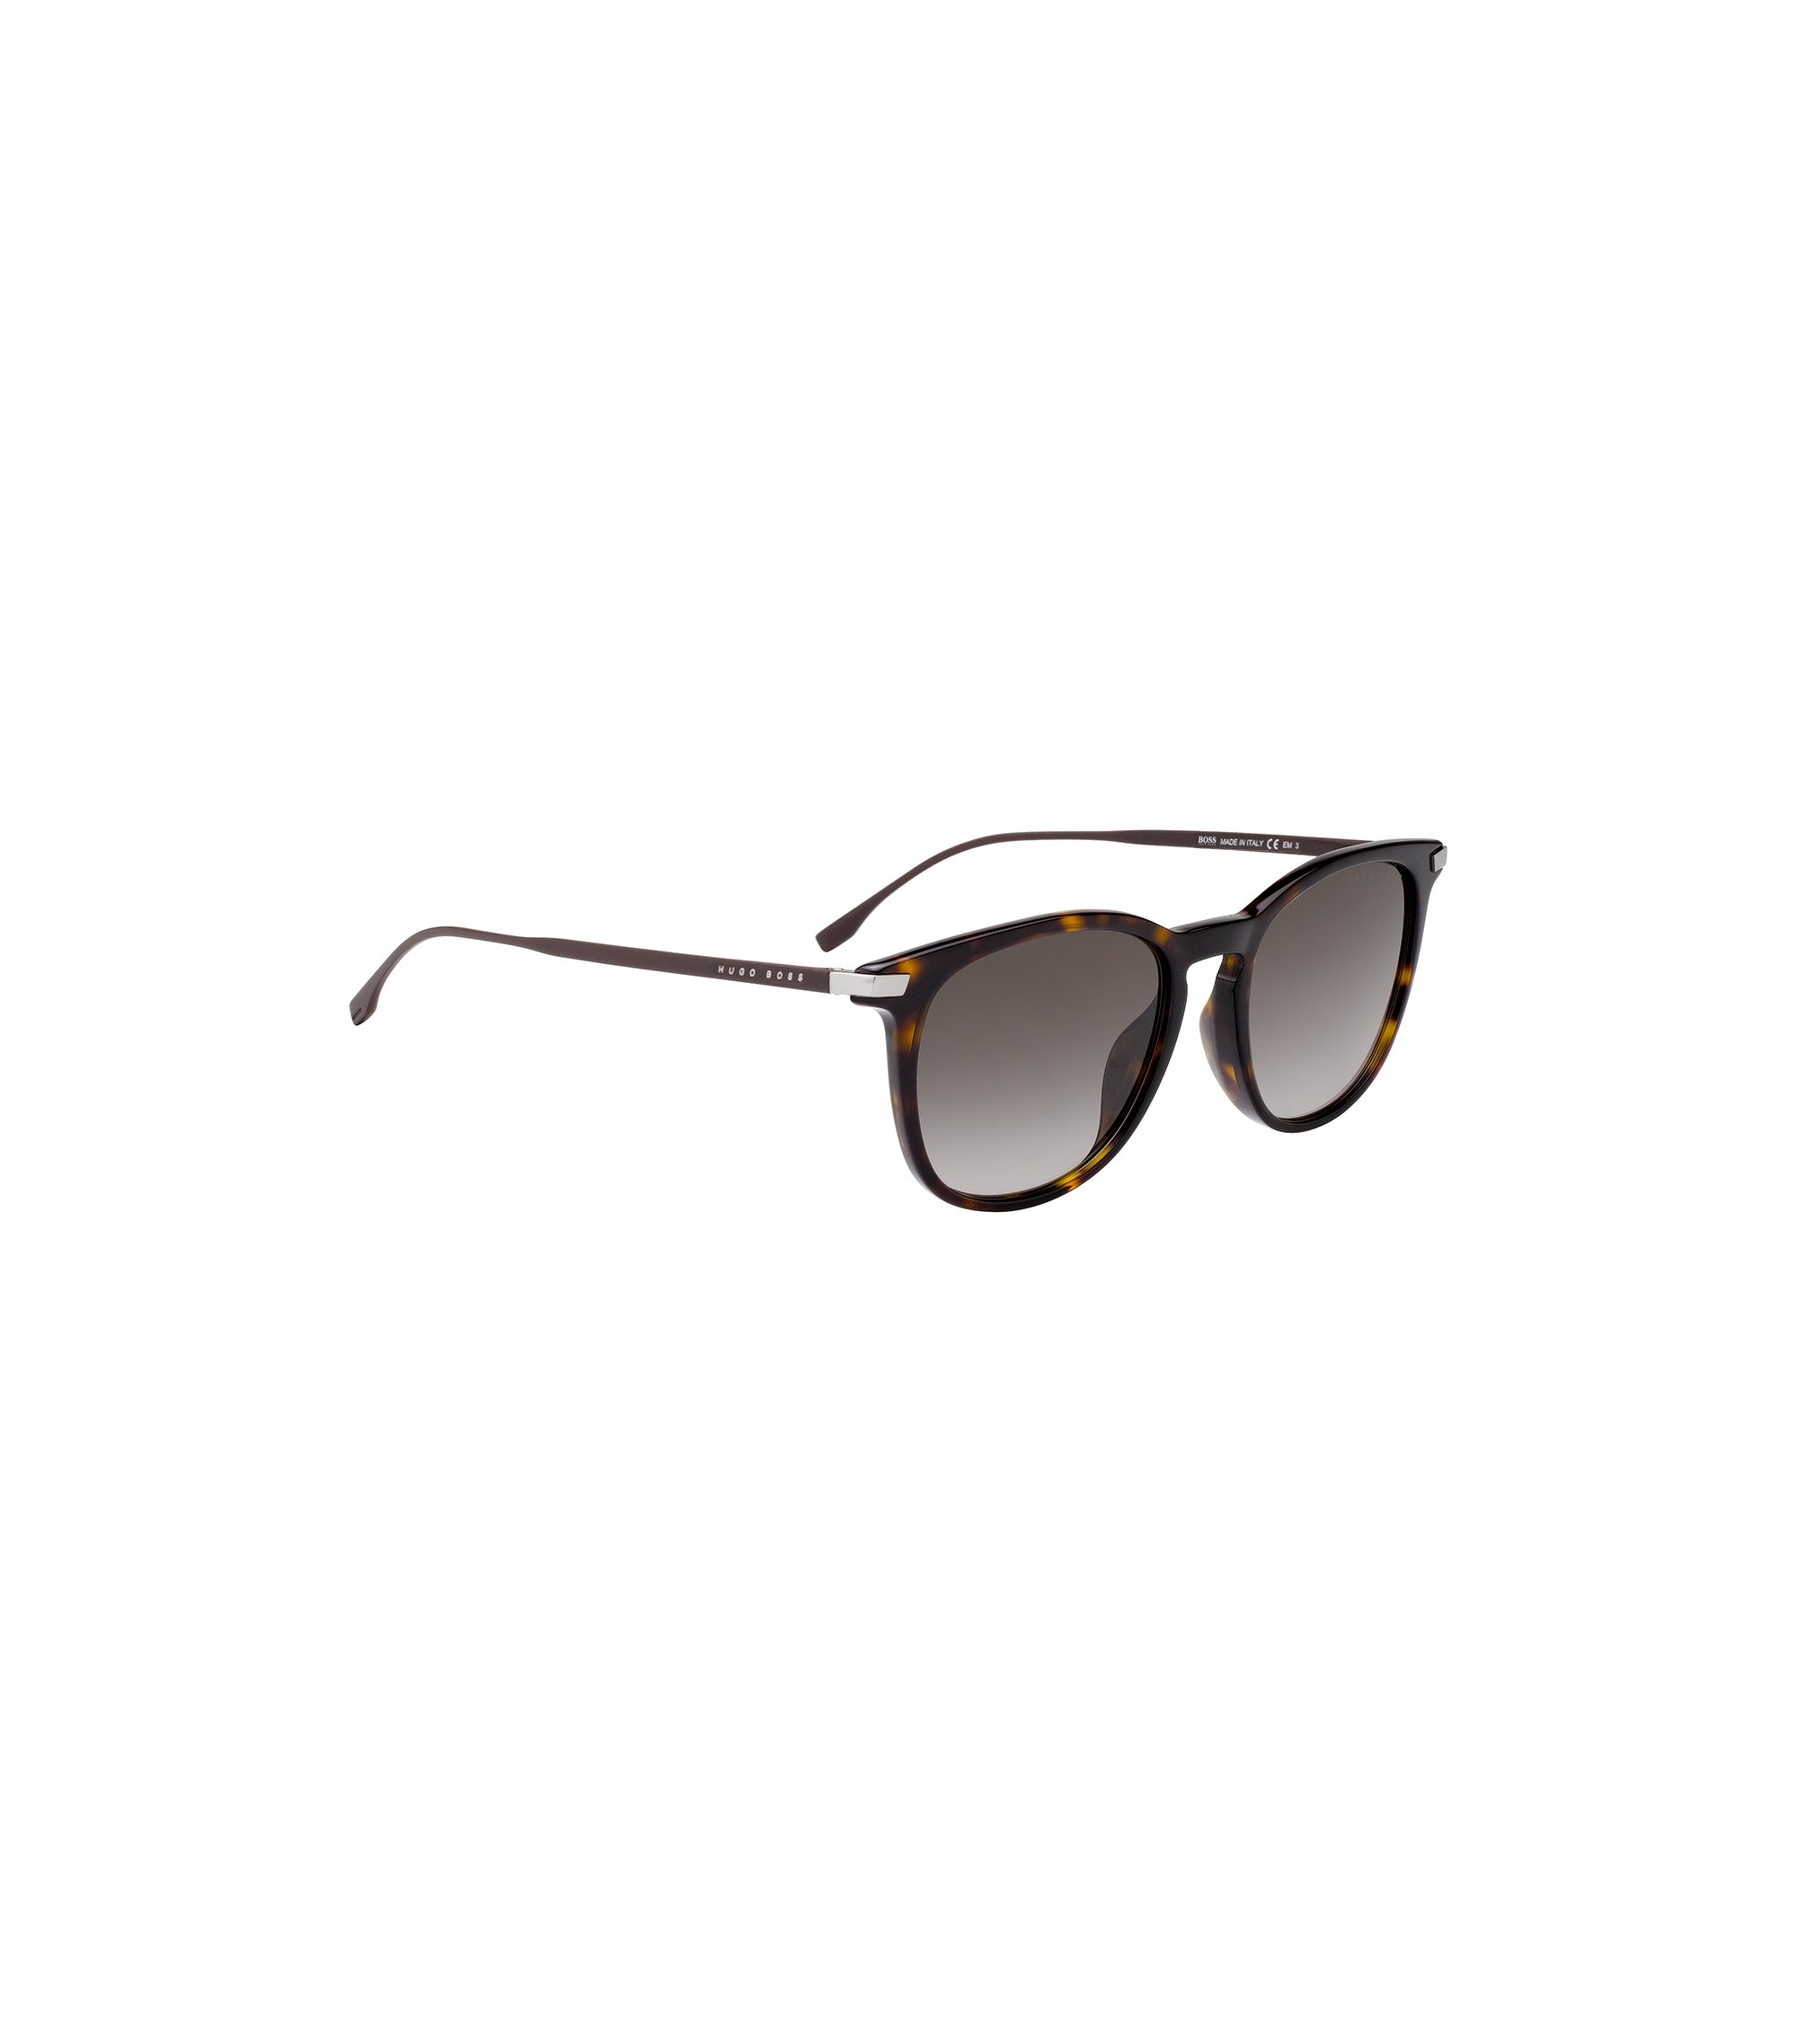 Havana-pattern sunglasses with metallic temples, Dark Brown